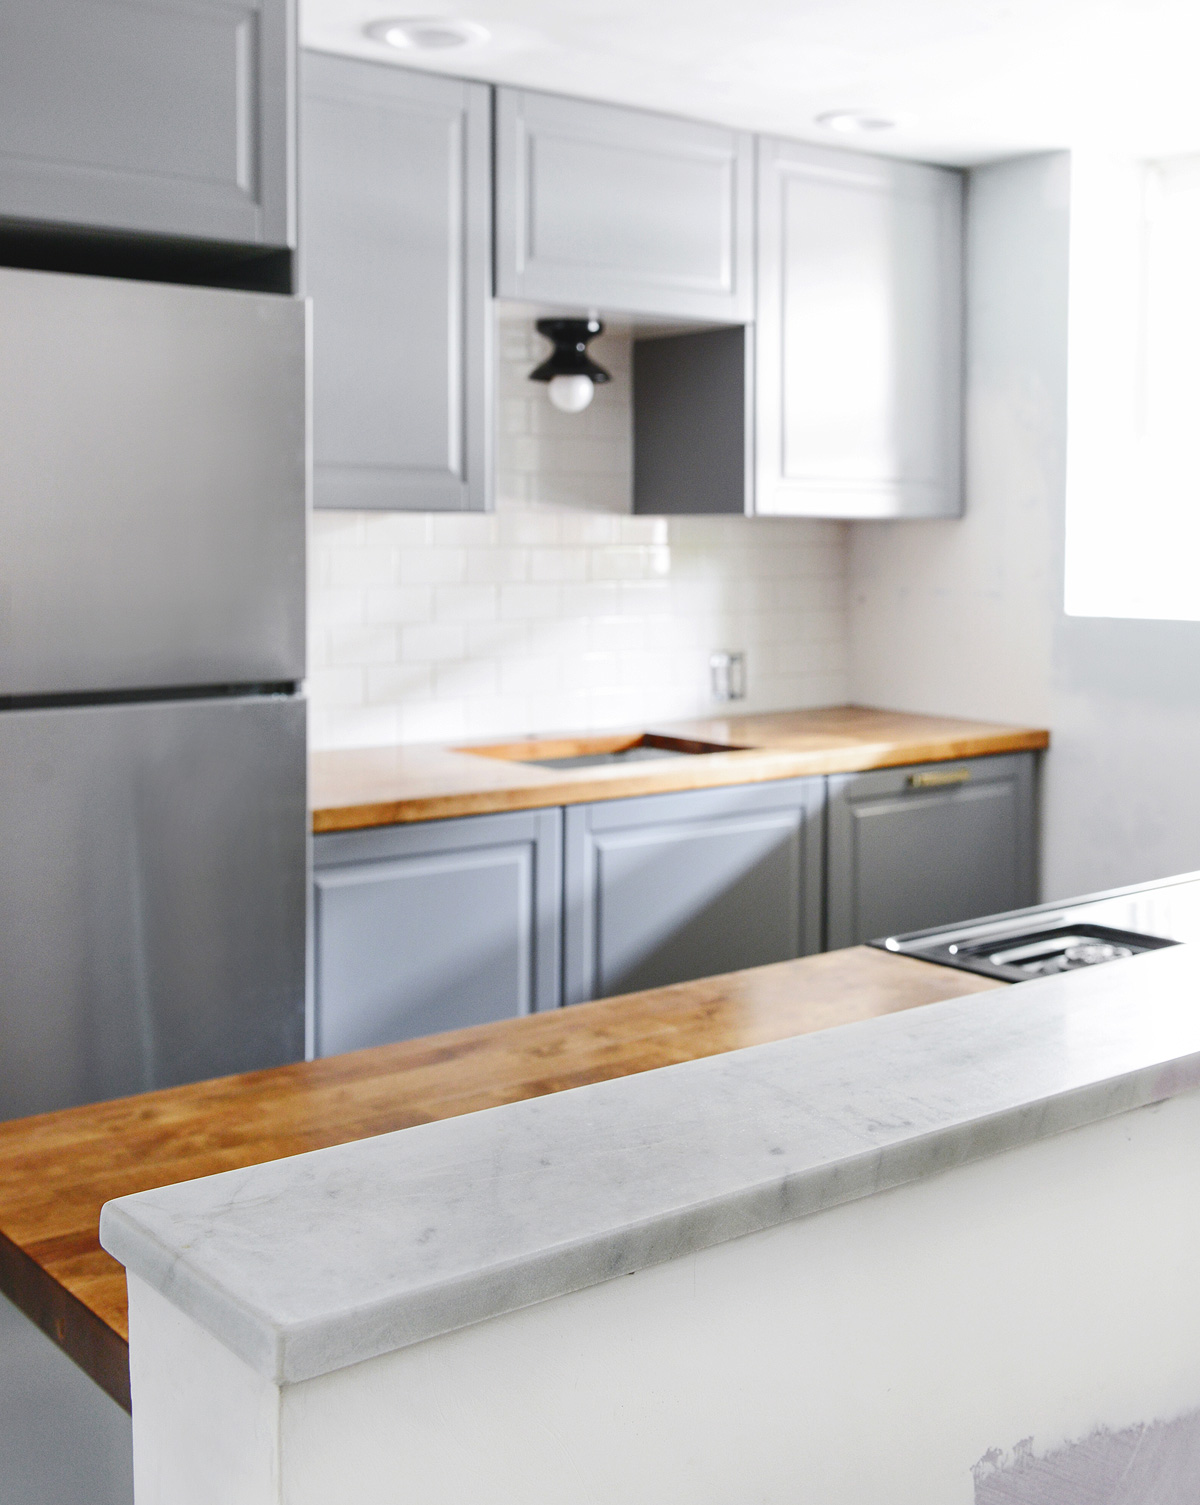 How We Polished A Mini Marble Countertop For The Garden Kitchen!